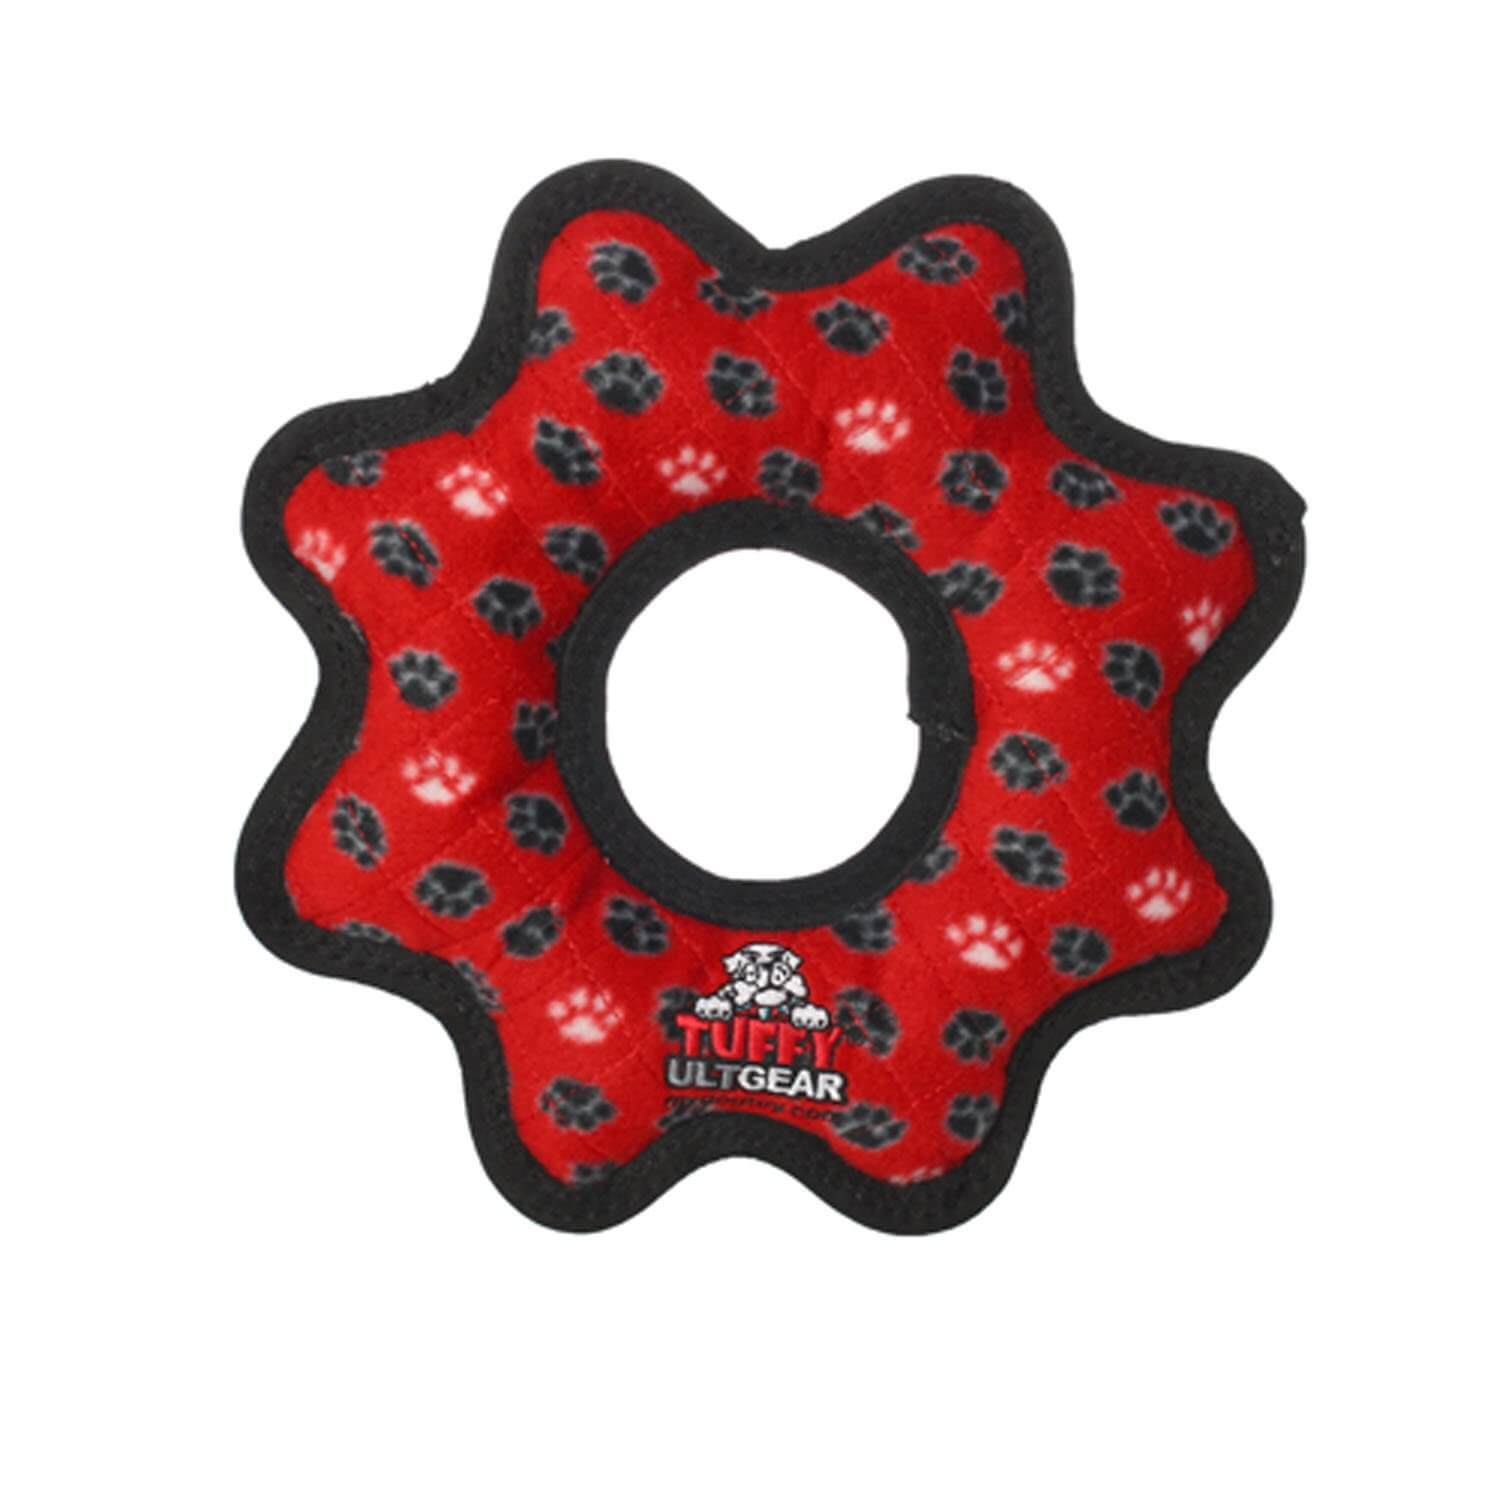 Indestructible Dog Tug Toy: I Went On A Quest For An Indestructible Dog Toy